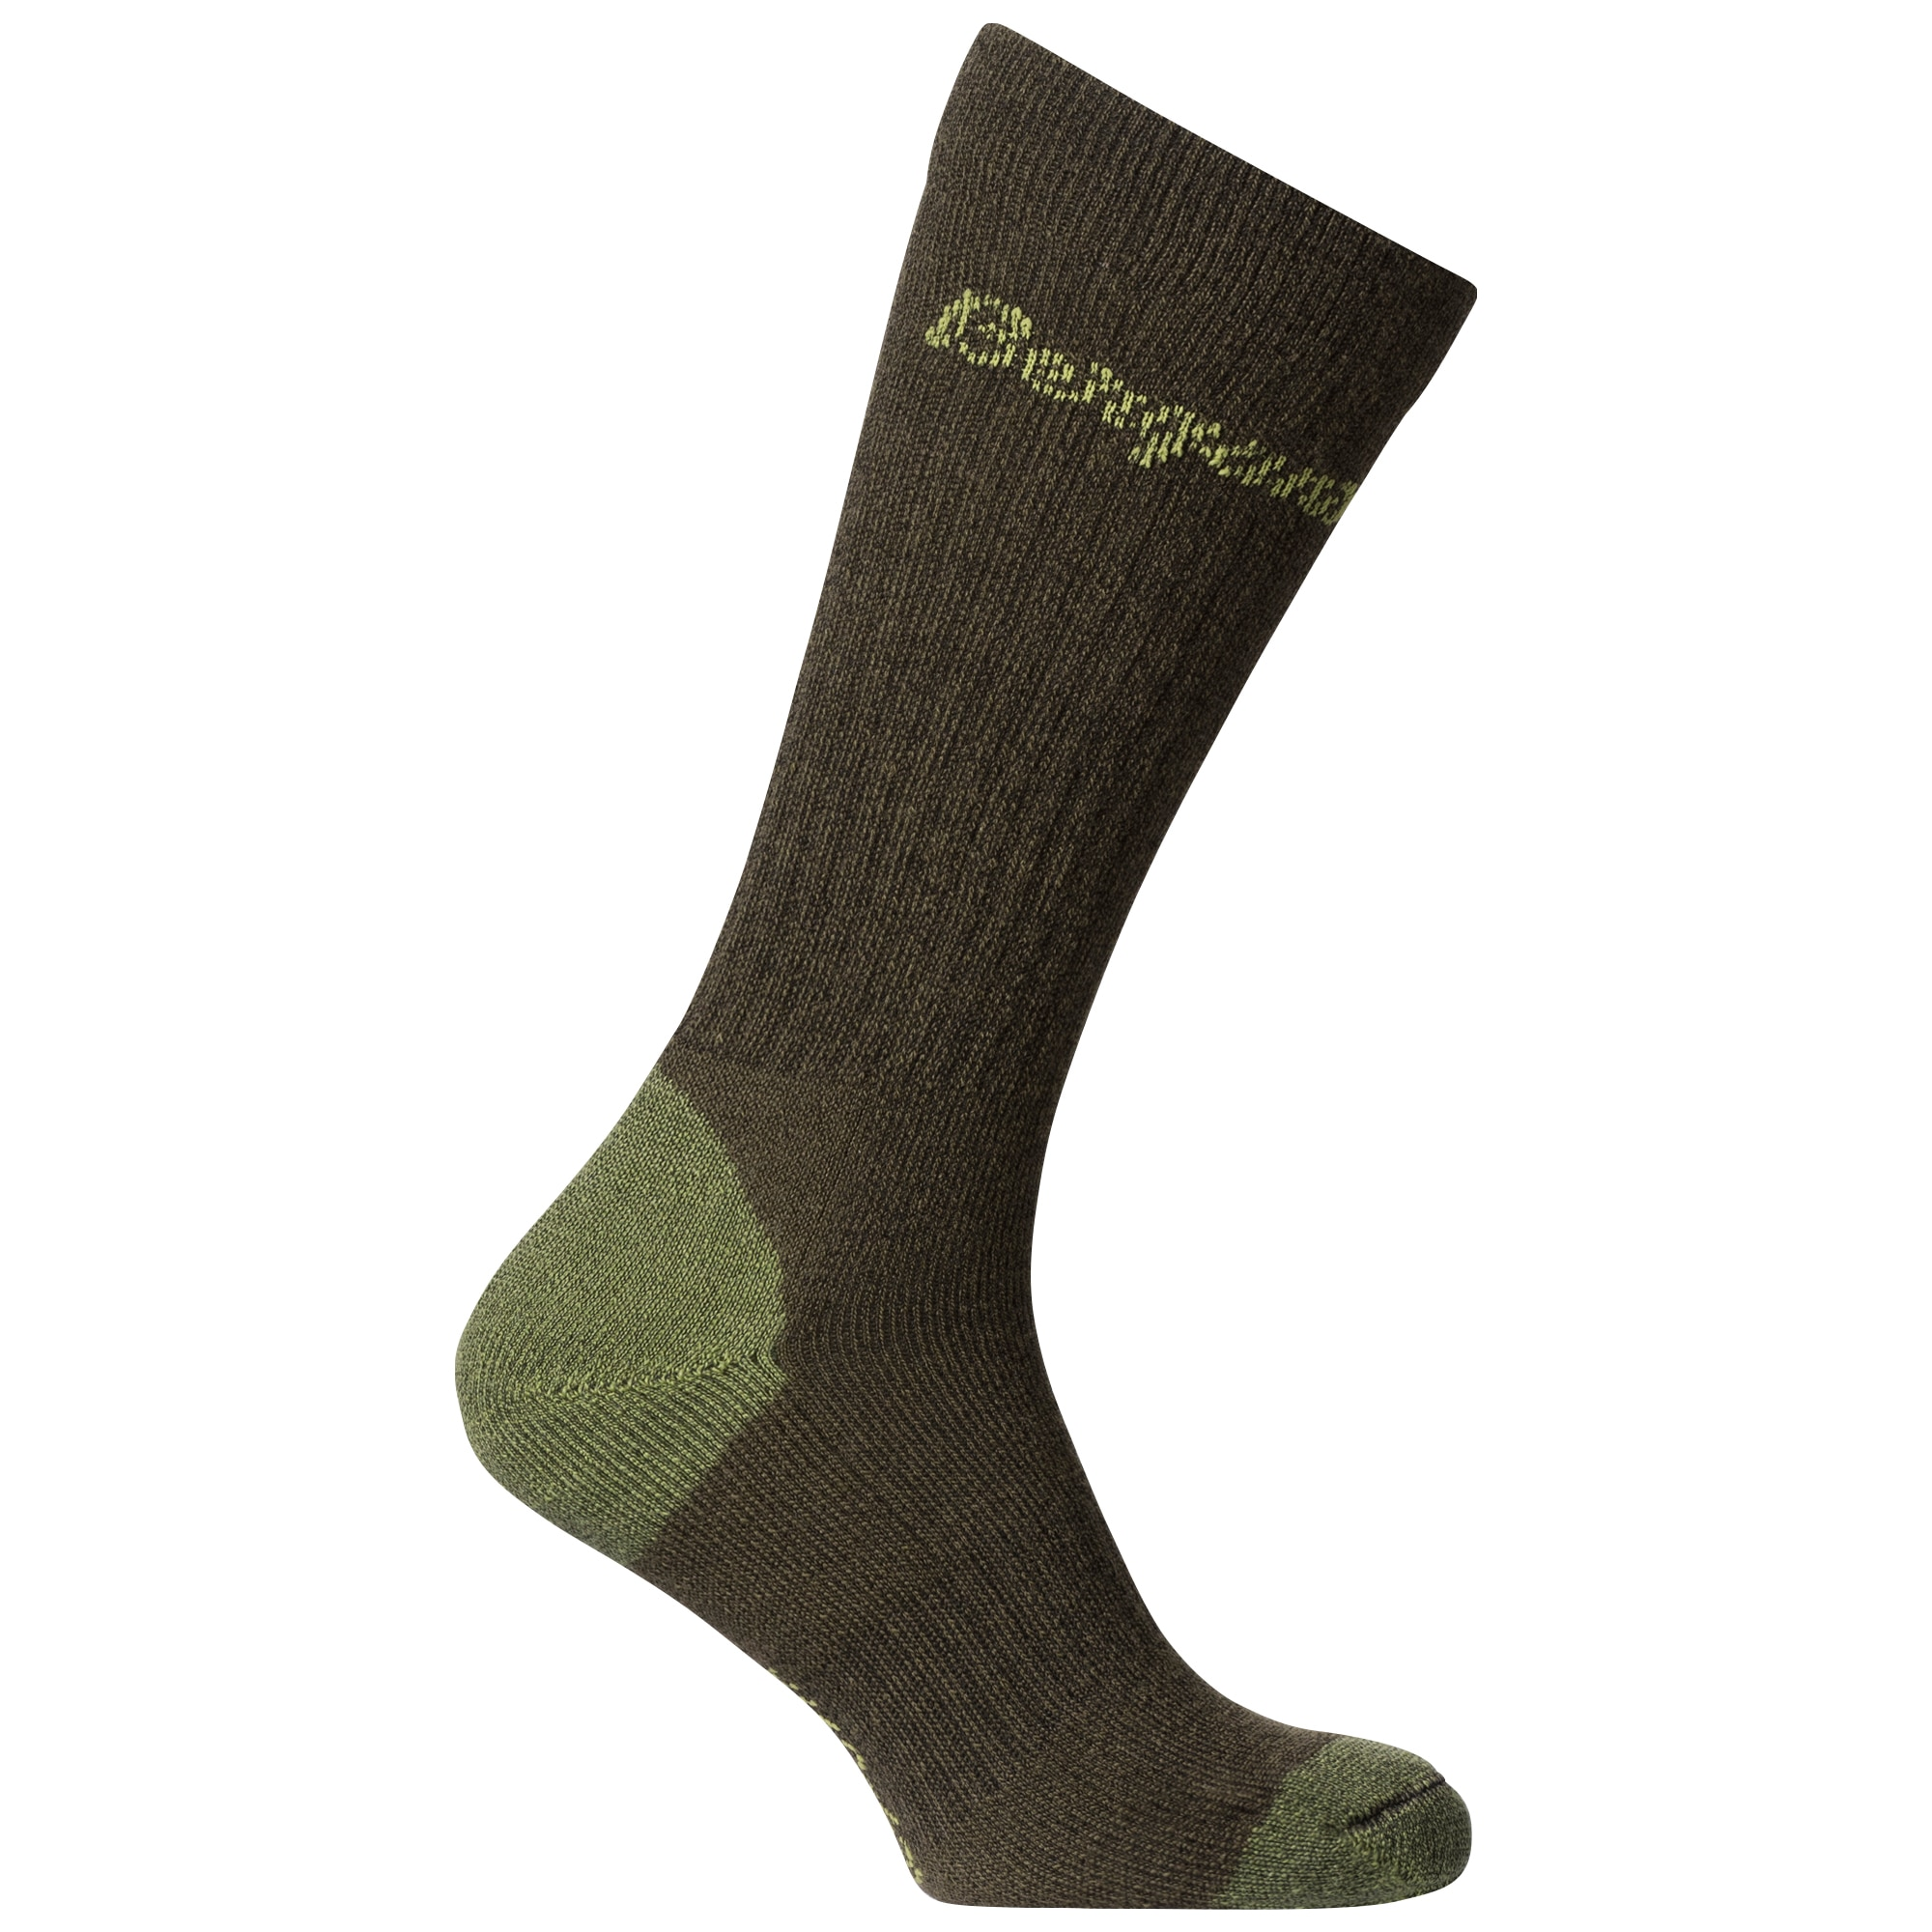 Hogna Wool Socks High